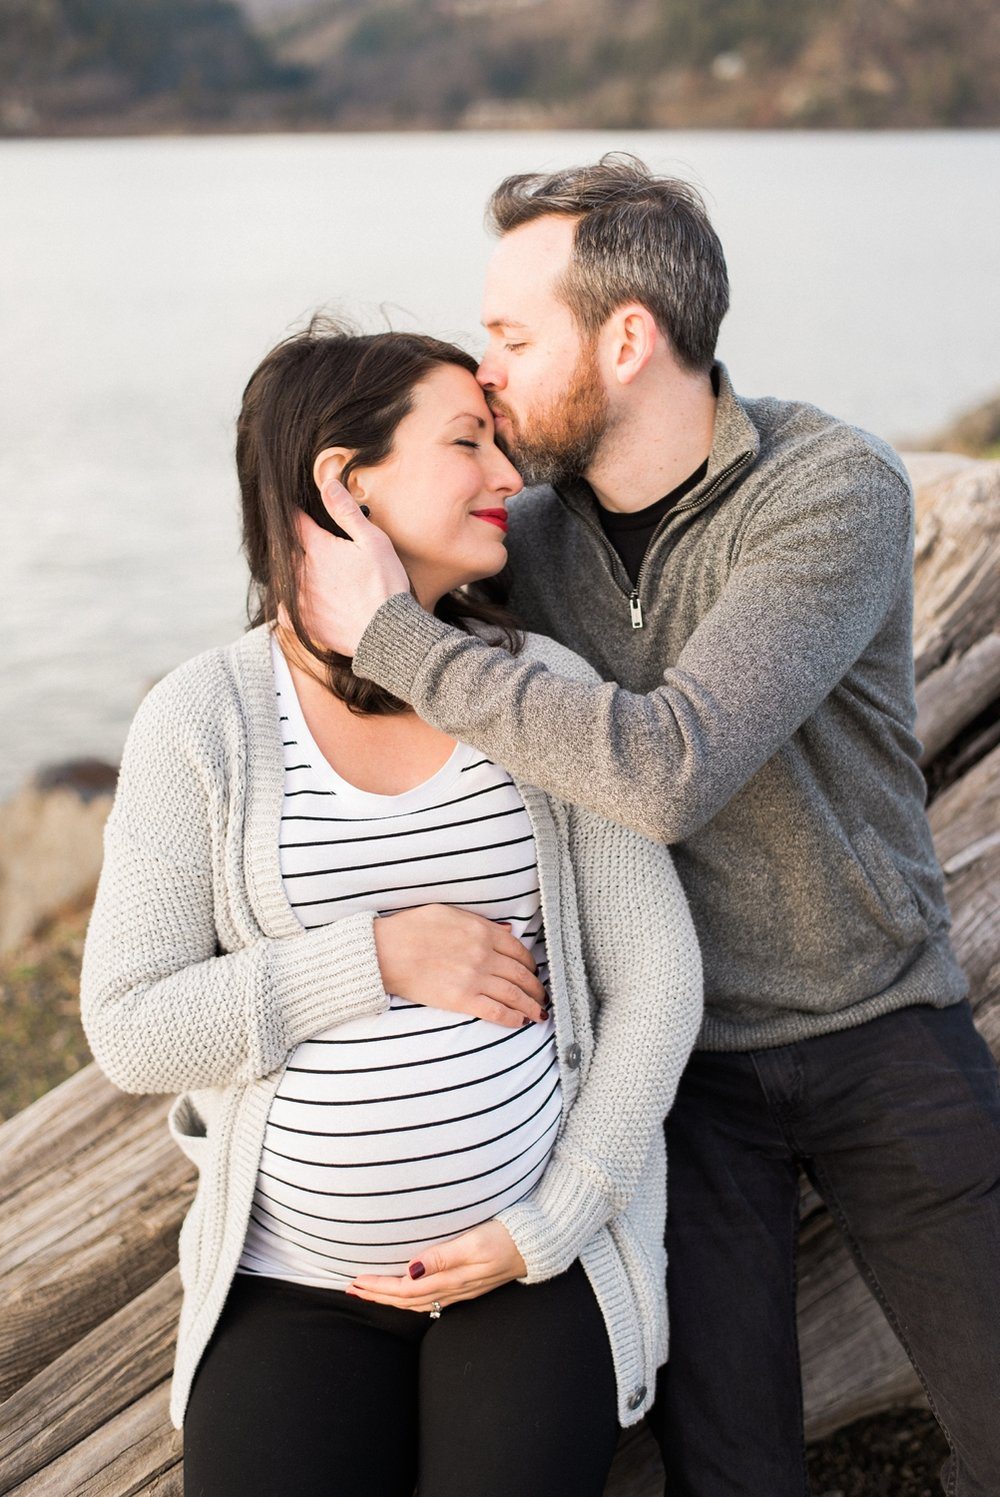 hood-river-maternity-photos-columbia-river-gorge-shelley-marie-photo-105_cr.jpg